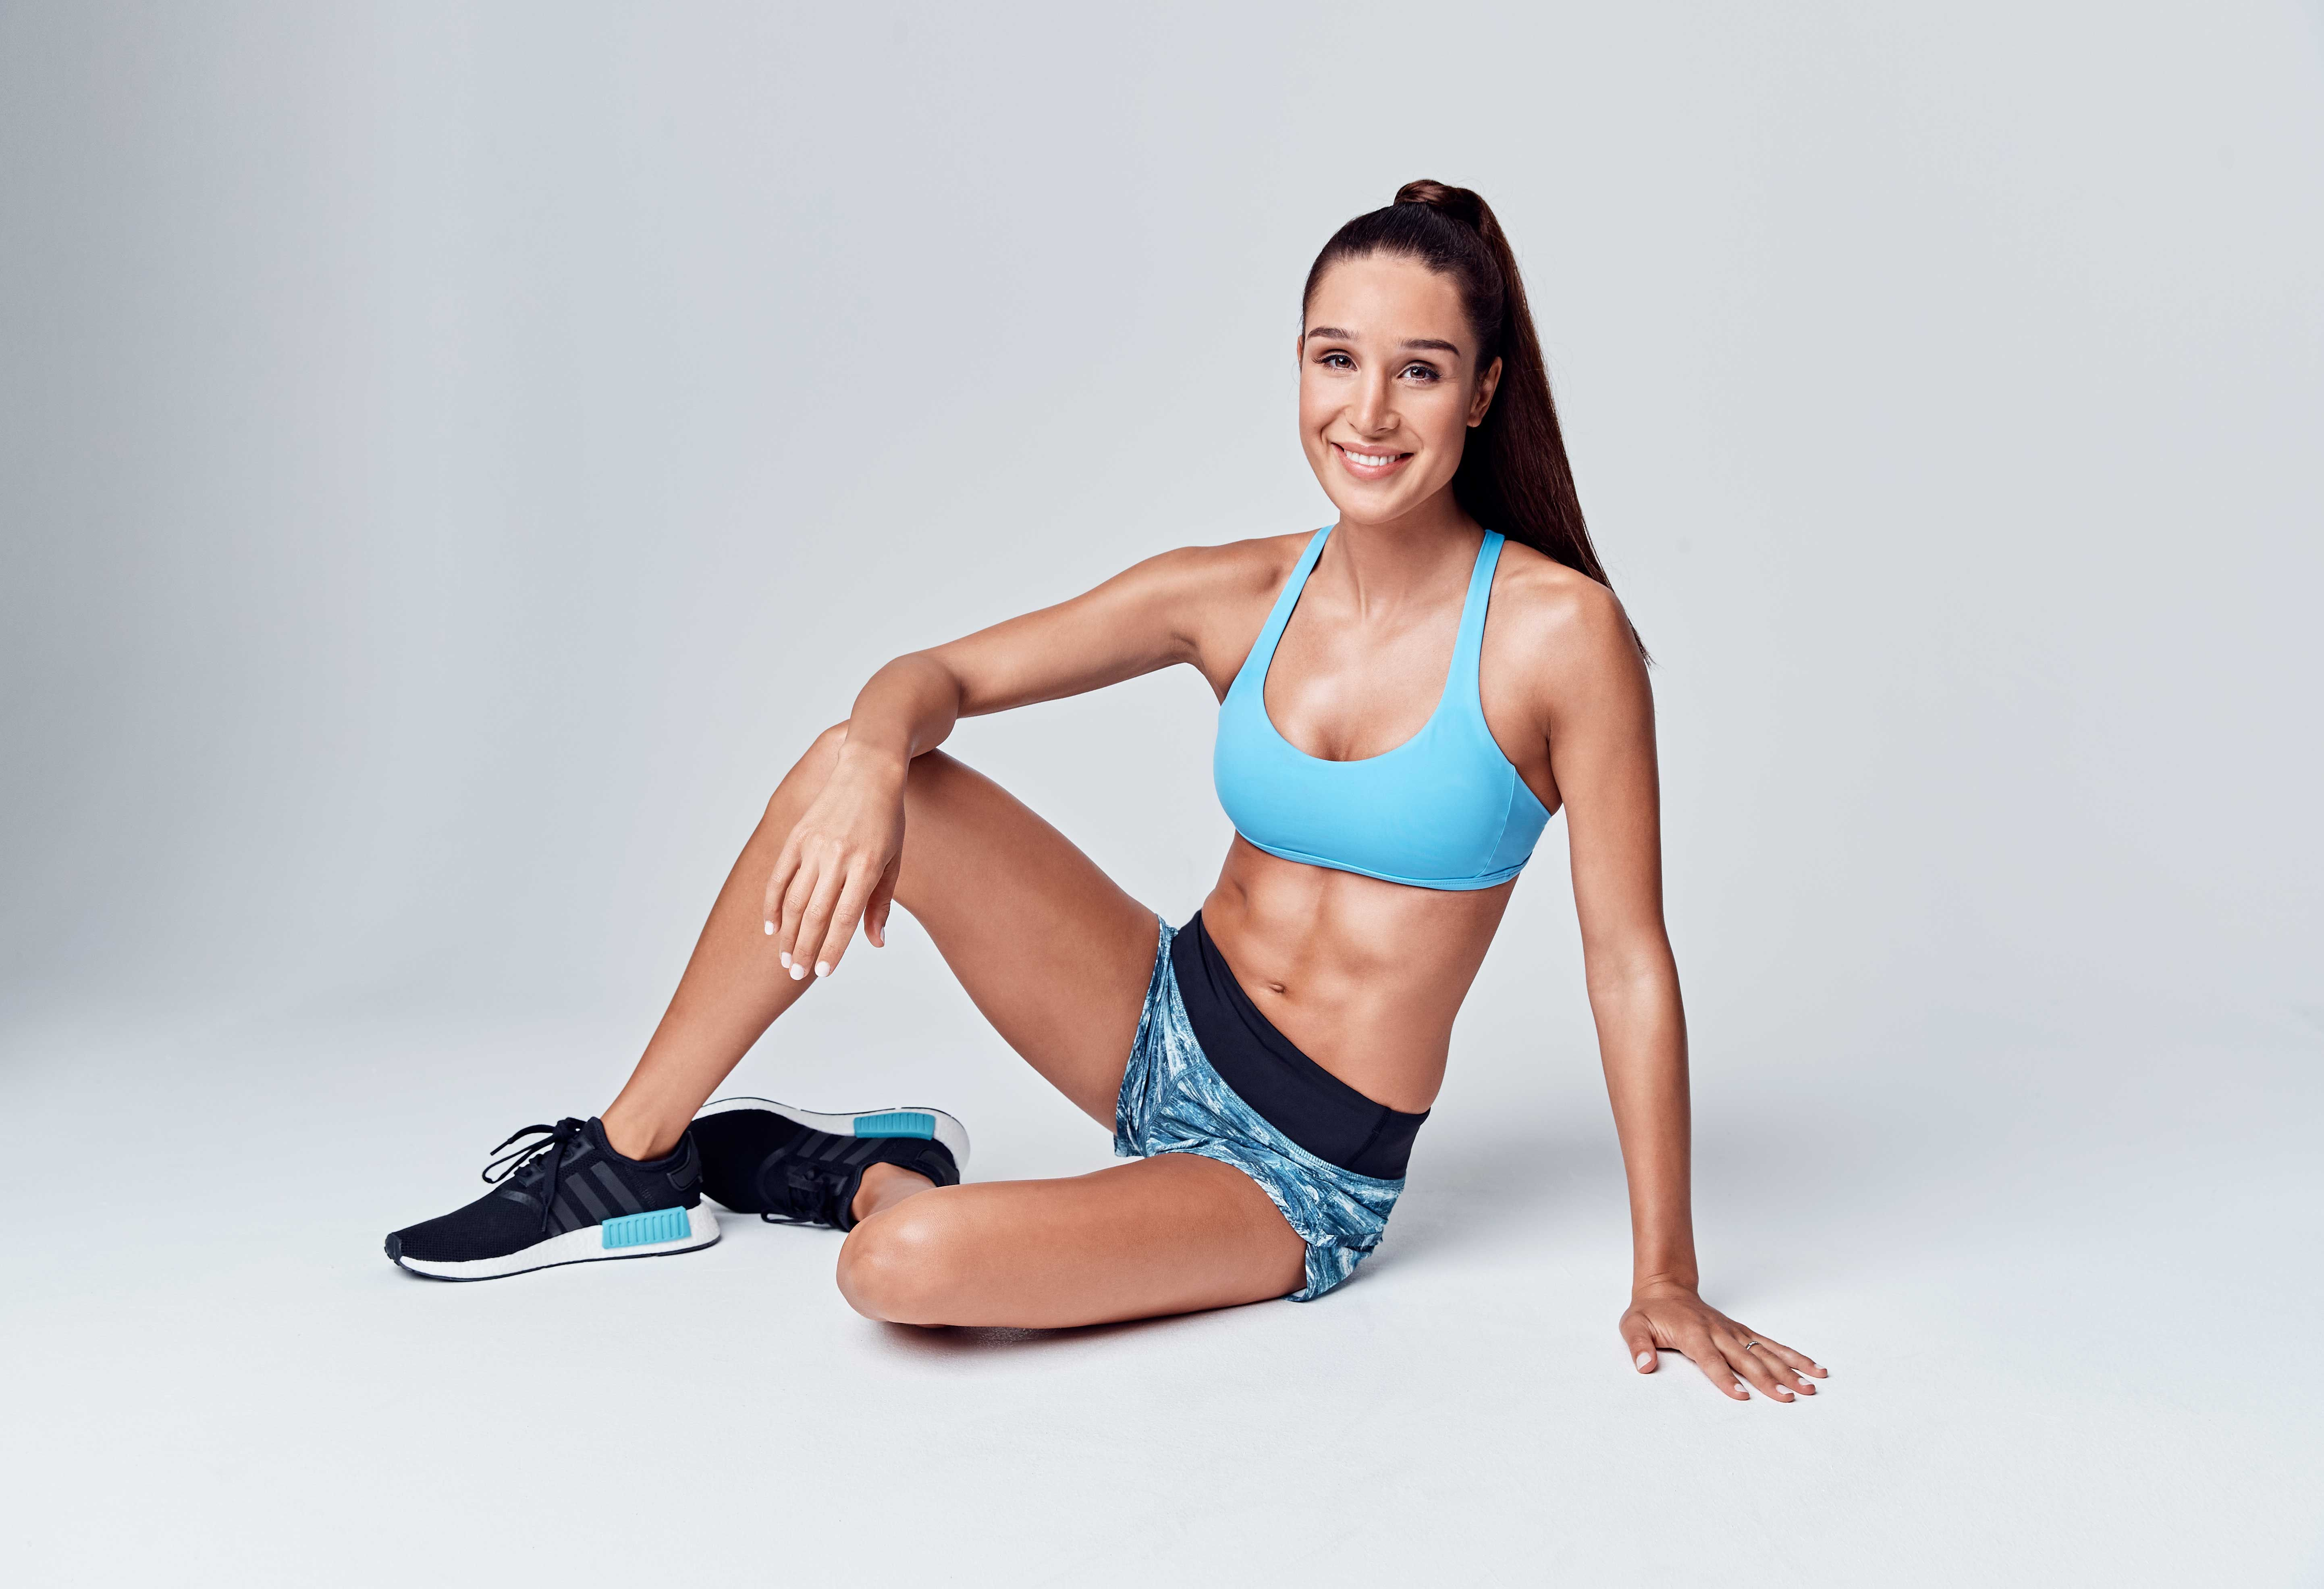 Kayla Itsines' Workout Plan: New Mum and Uber Famous Trainer Shares a 4-Week Sweat